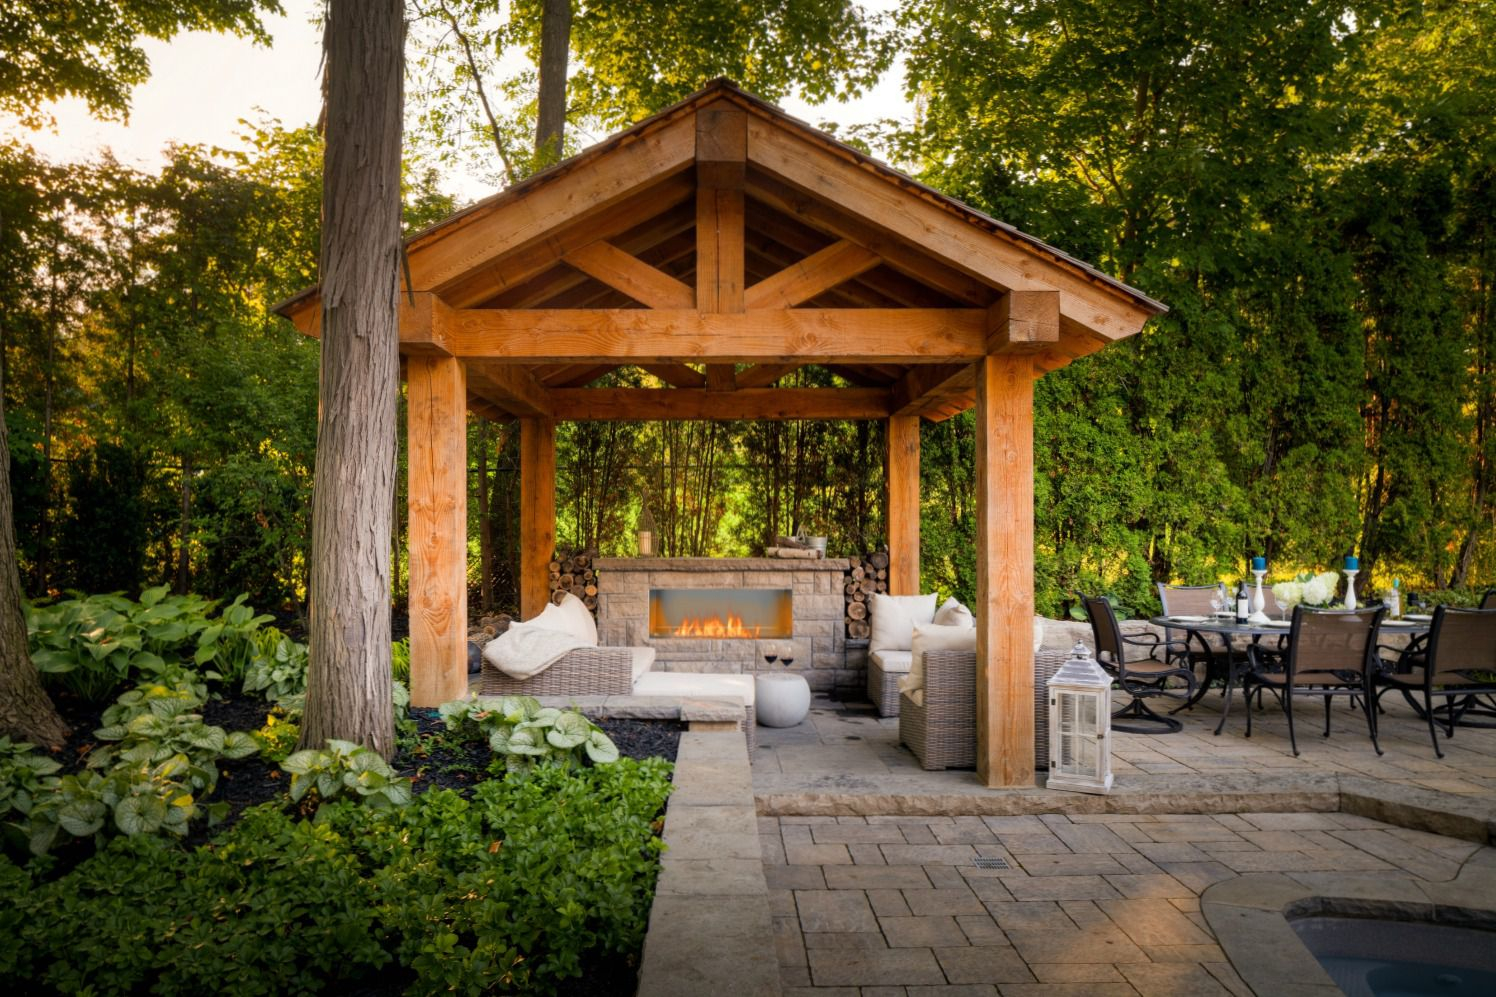 27 Gorgeous Gazebo Design Ideas pertaining to 13 Awesome Concepts of How to Build Gazebo Ideas For Backyard